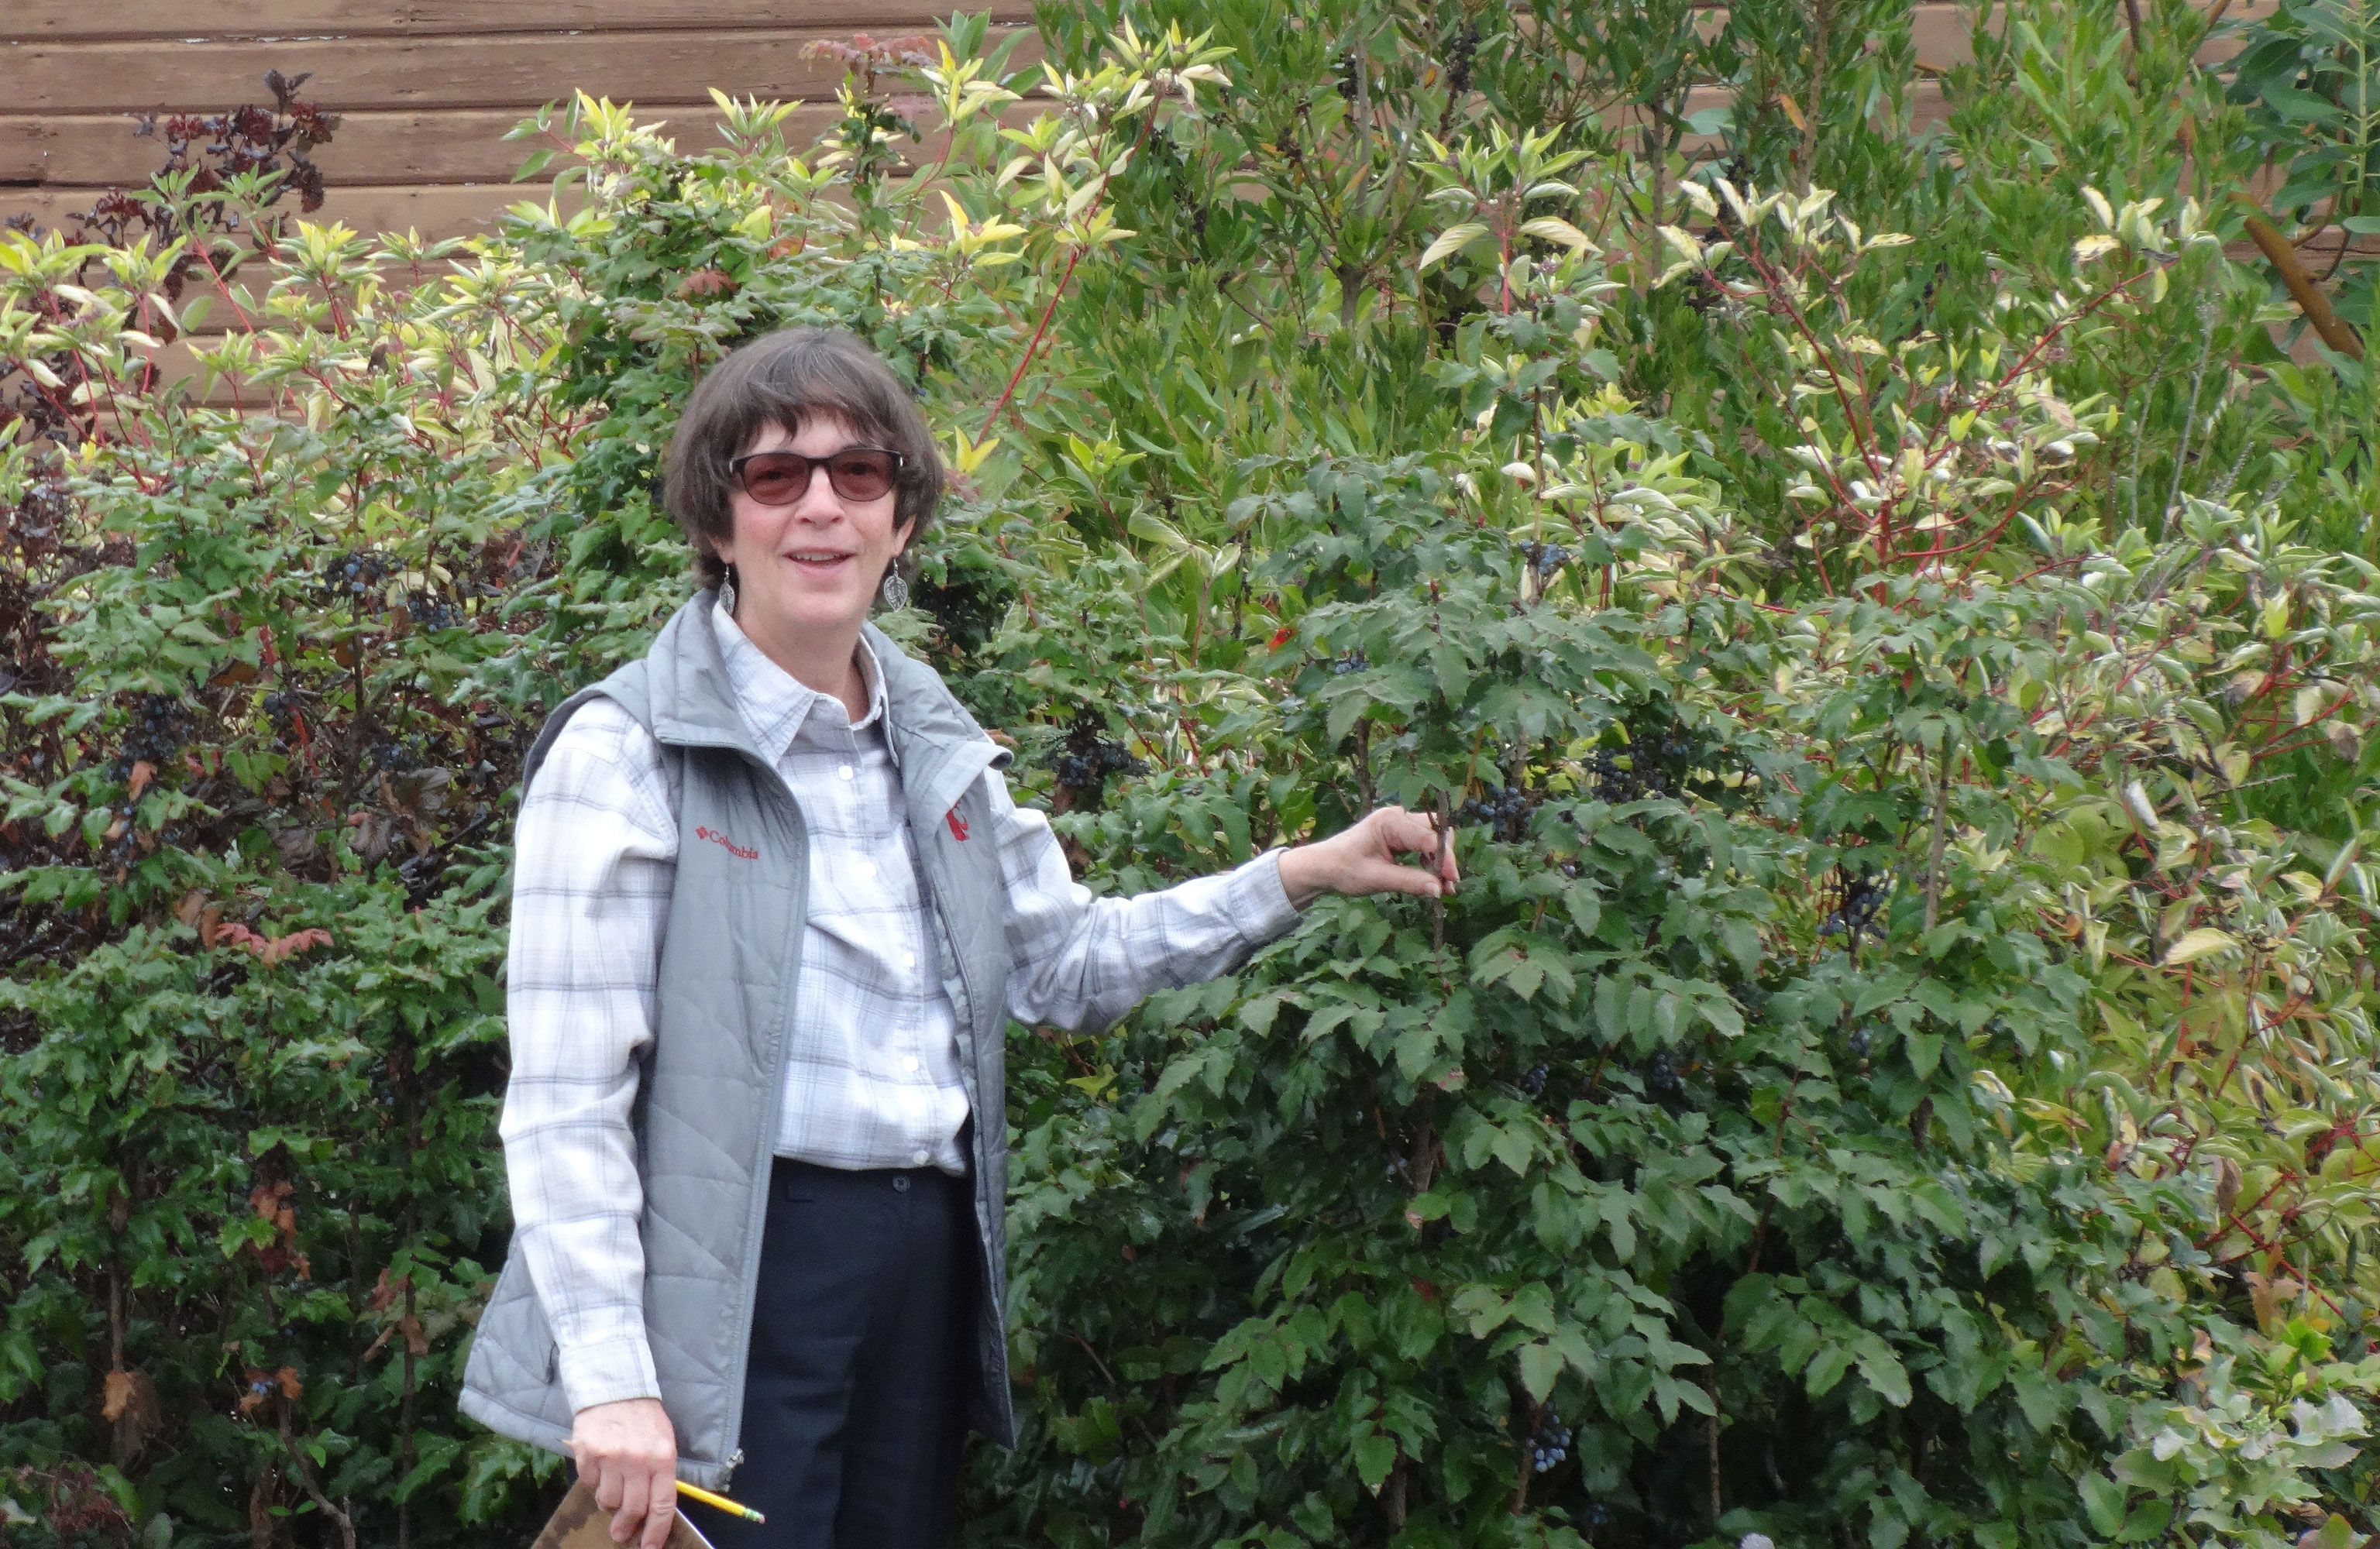 How does your rain garden grow best plants for northwest wsu native plants find use statewide publicscrutiny Images